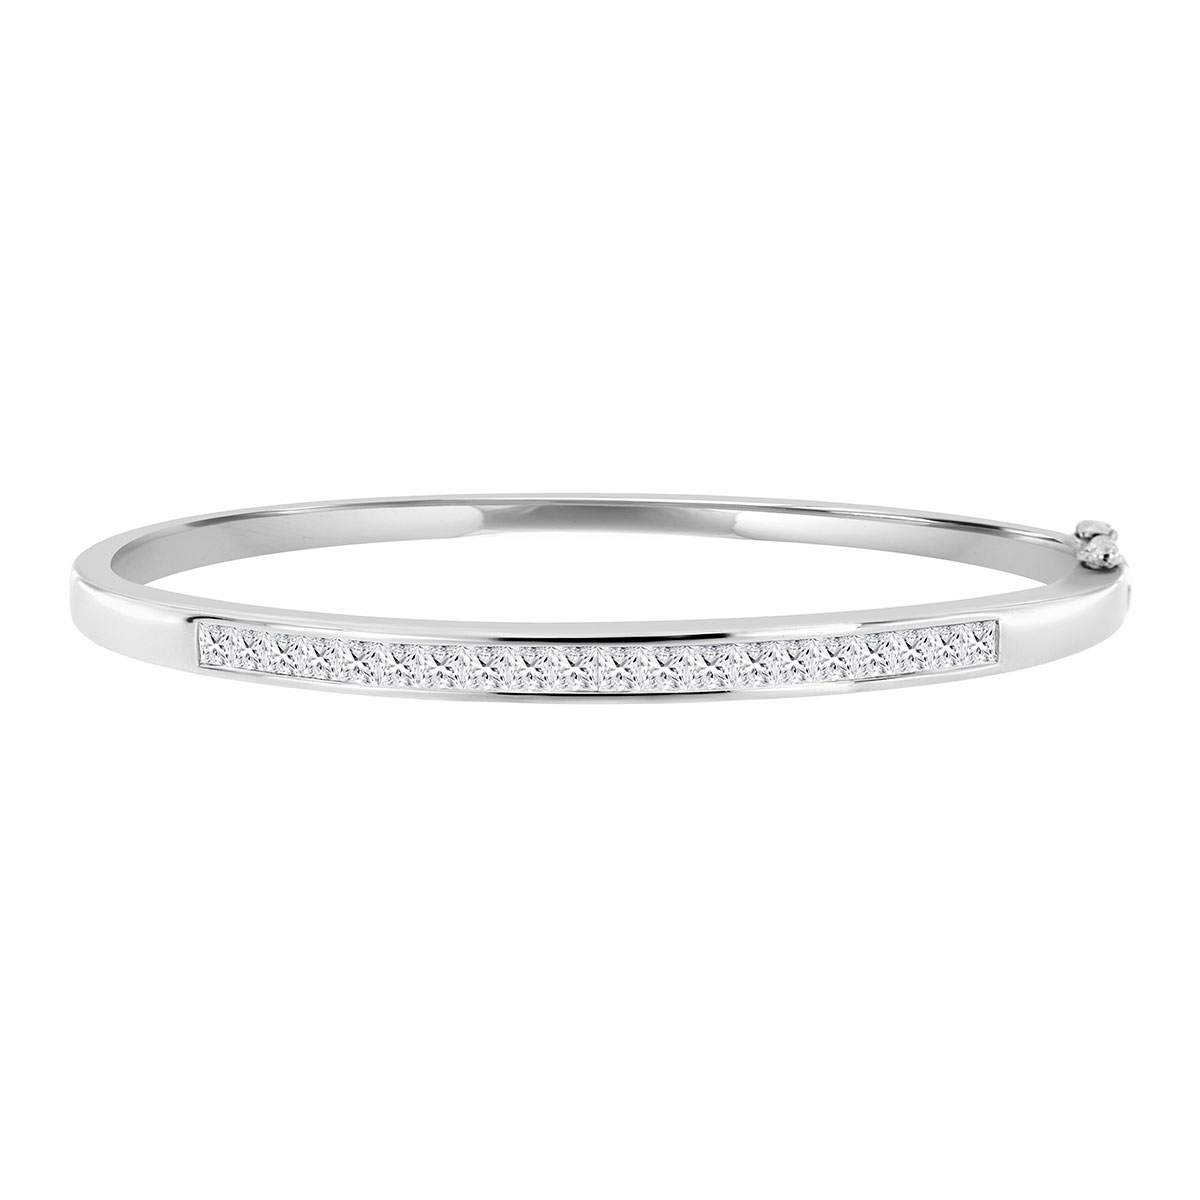 18K White Gold Channel Princess Diamond Bangle ( 2.5 ct. tw)